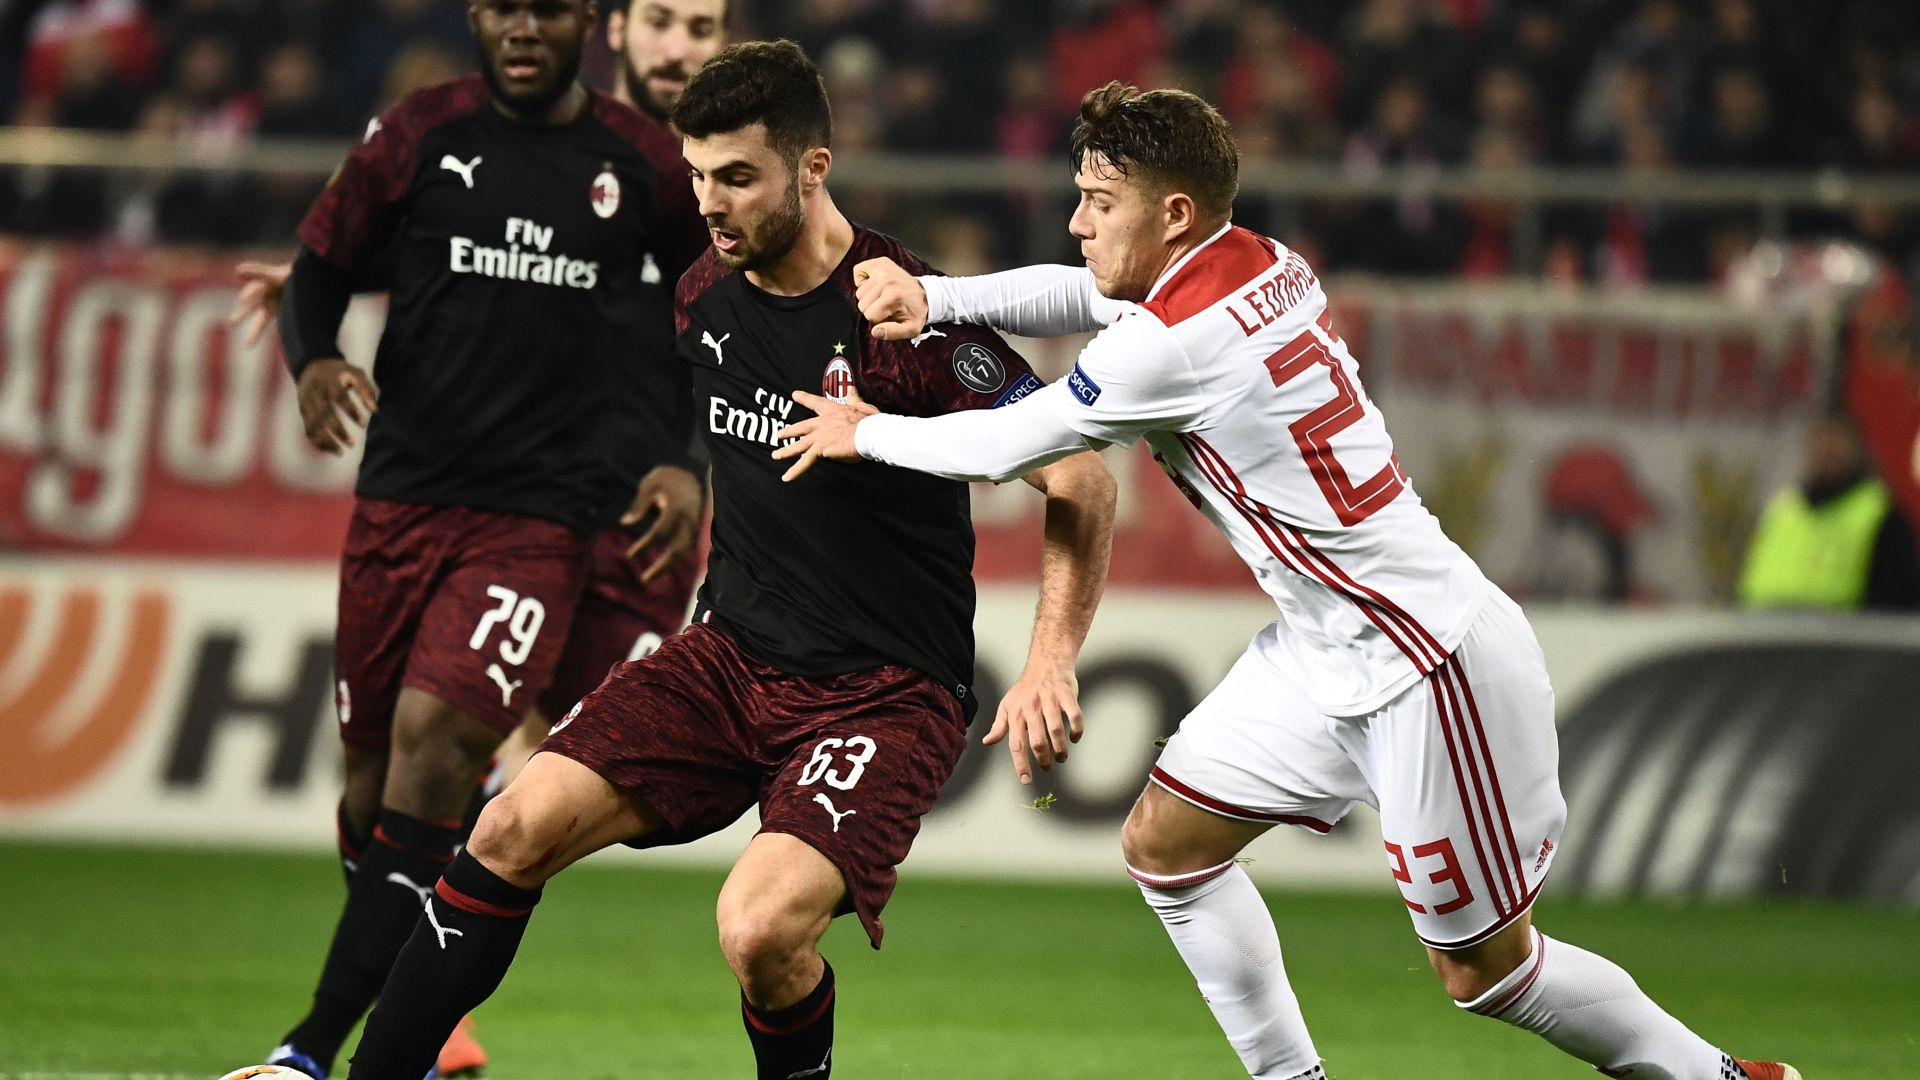 https://images.performgroup.com/di/library/GOAL/af/29/patrick-cutrone-olympiacos-milan-europa-league_s2bgmmv5tanp1hk25k6zf9syp.jpg